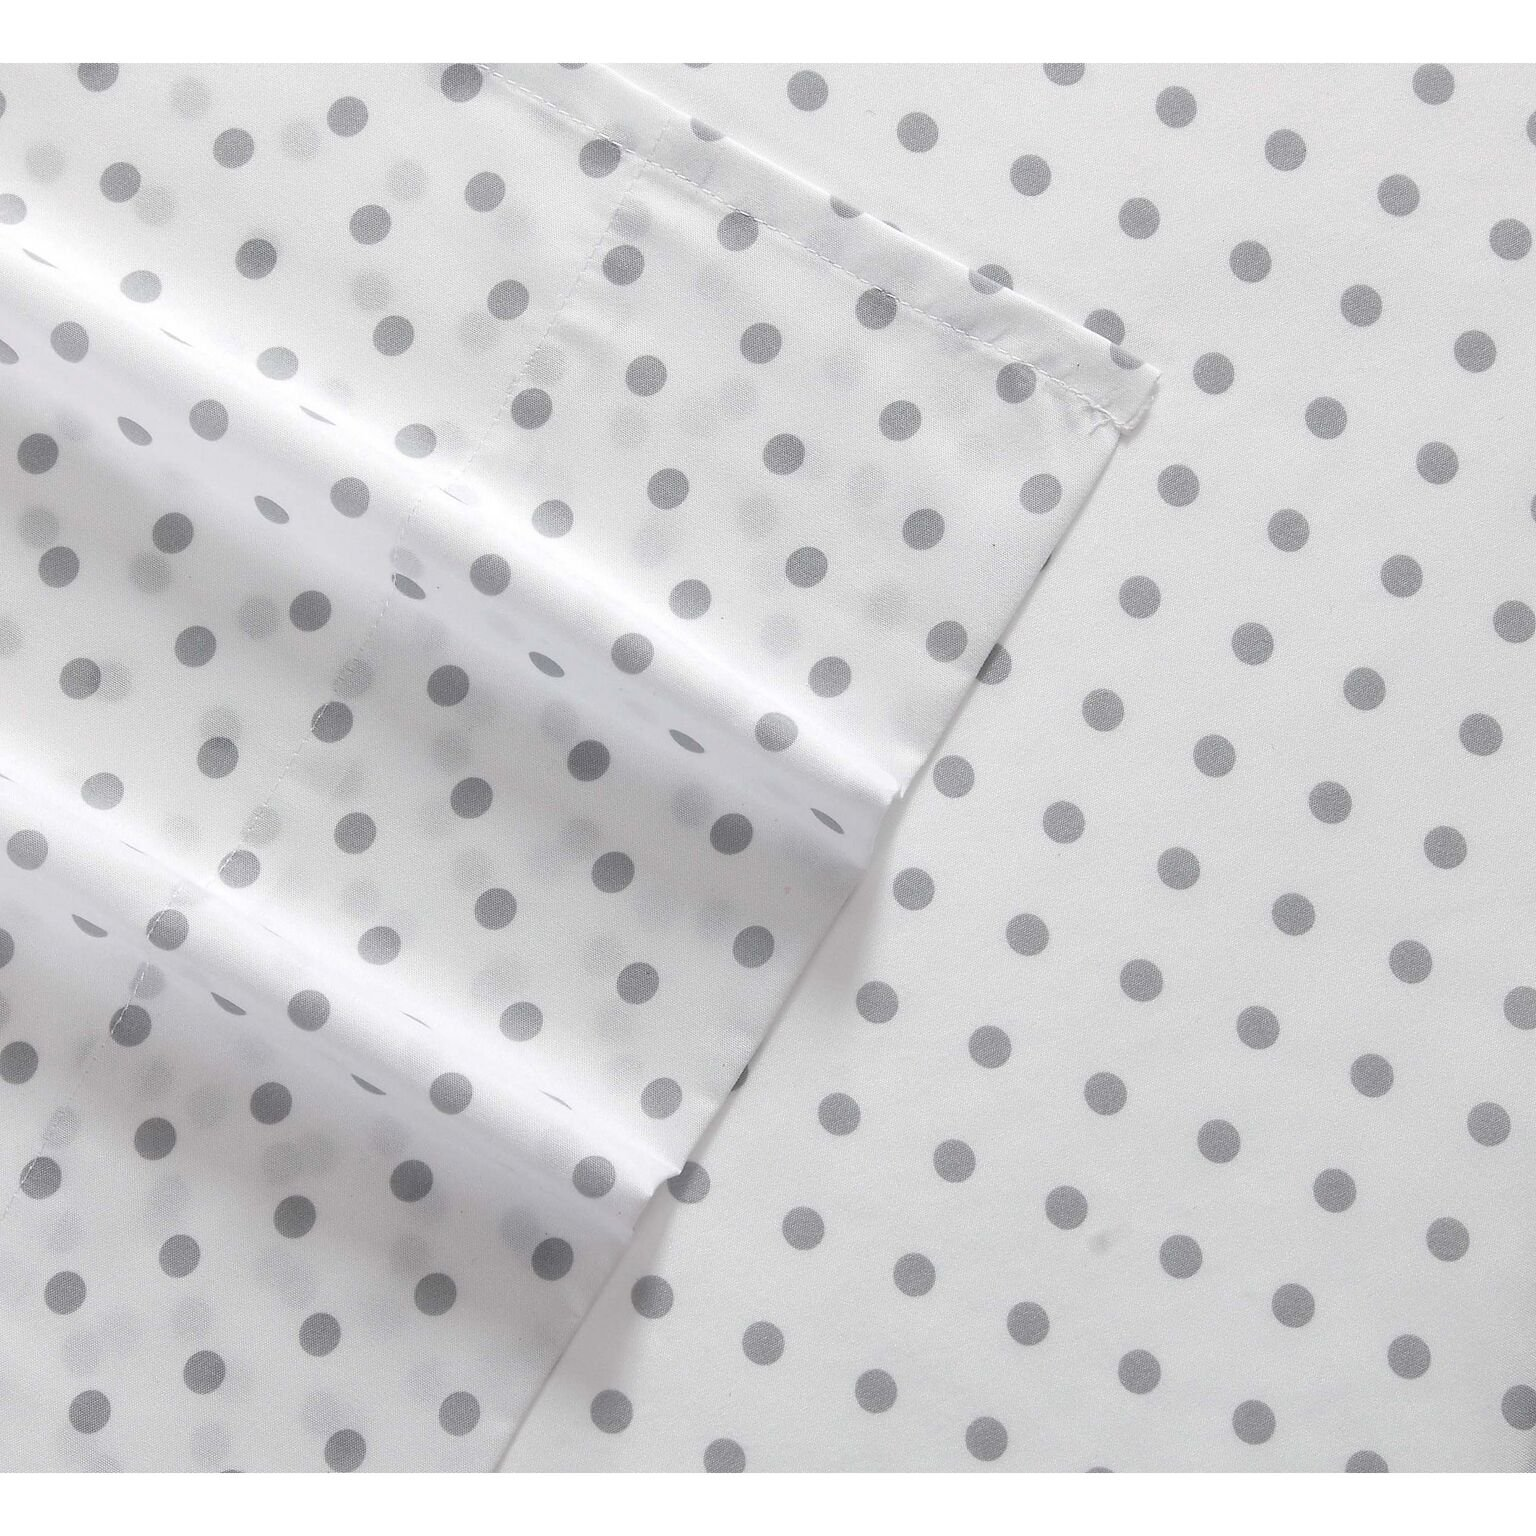 Truly Soft SS2329GYFU-4700 Everyday Printed Dot Sheet Set, Full, Grey by Truly Soft Everyday (Image #3)